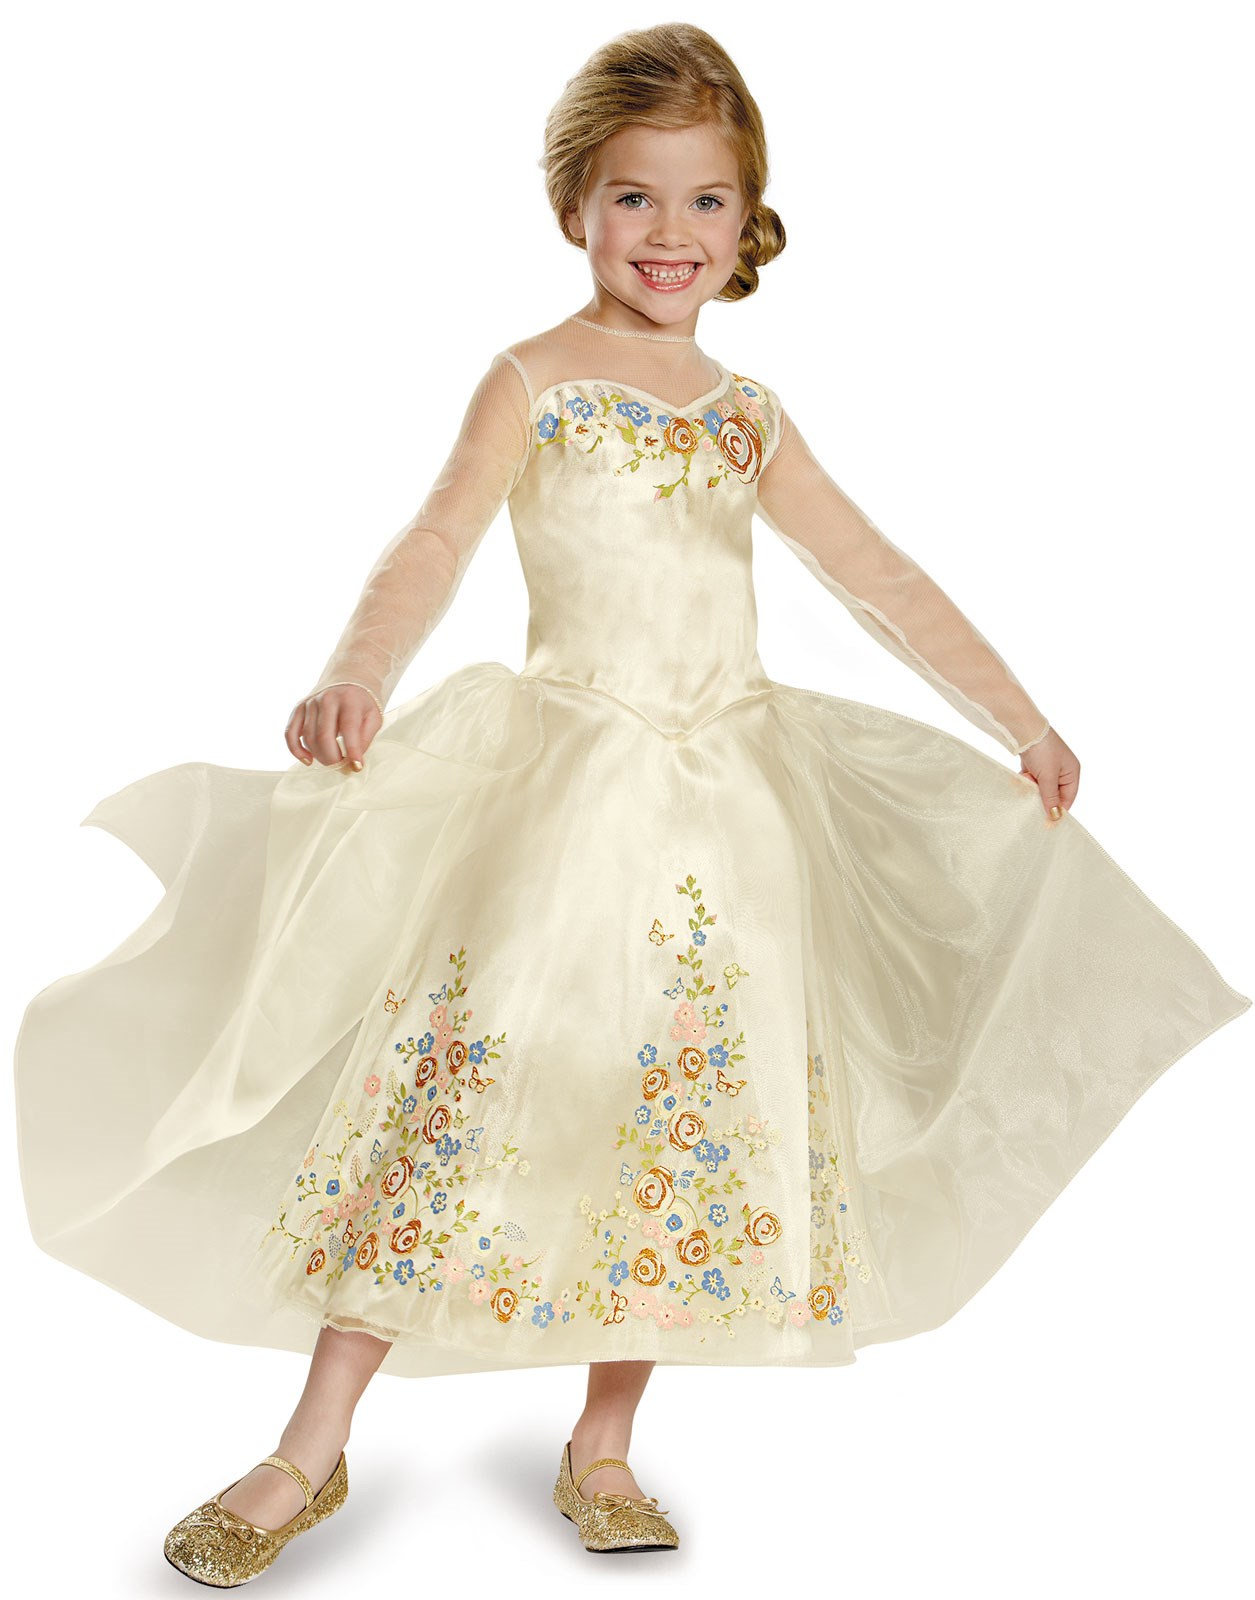 Disney Cinderella Movie Wedding Dress Deluxe Outfit for Kids XS (3T-4T)